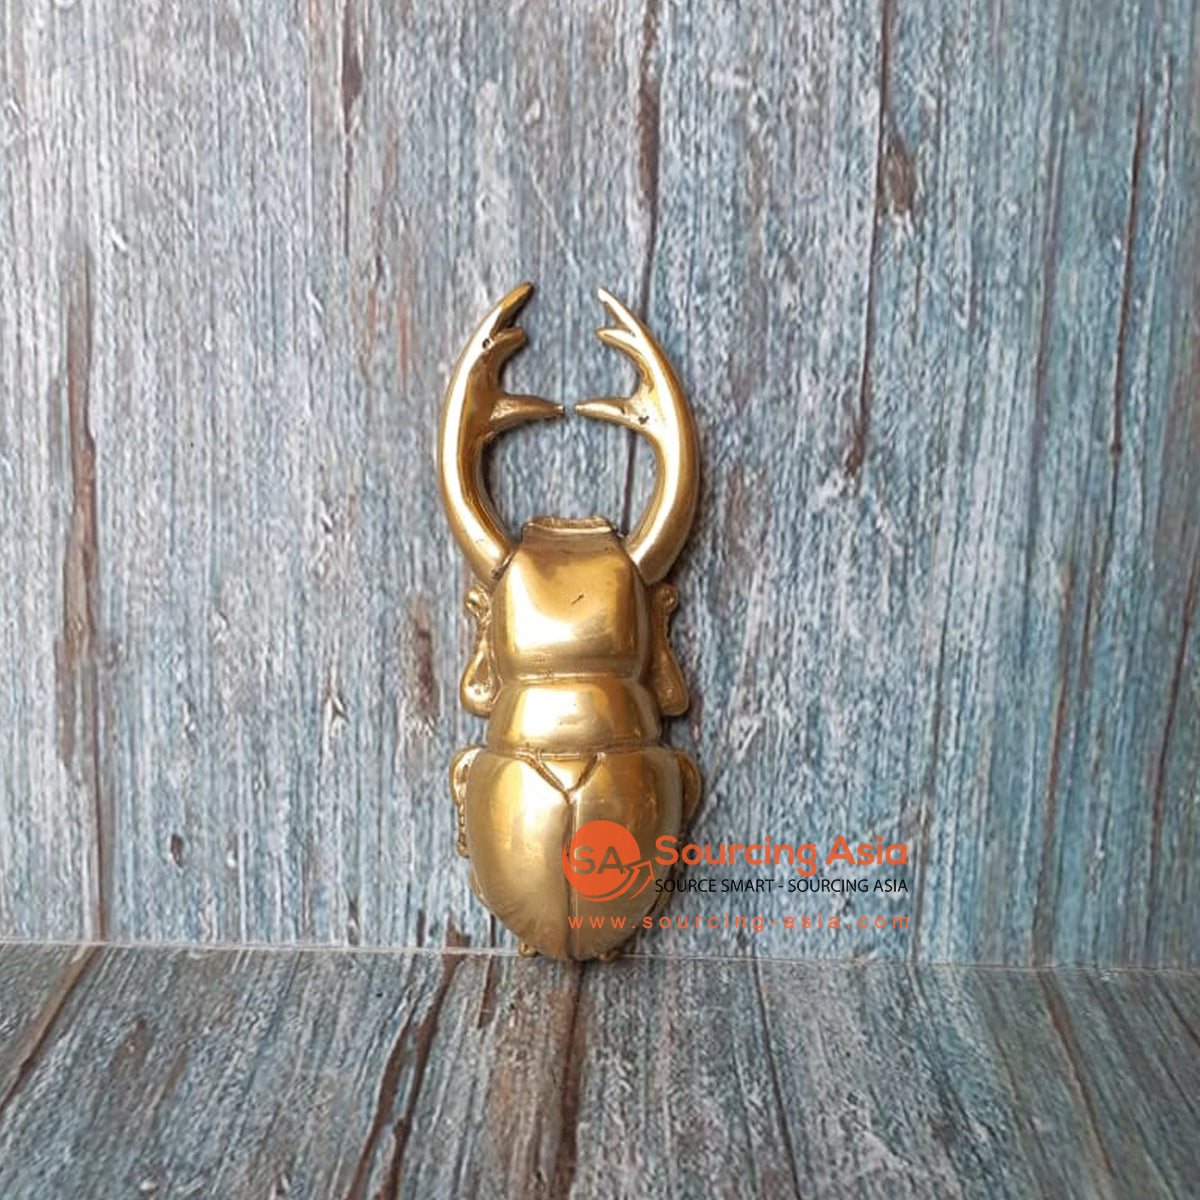 GB175 BRONZE BEETLE BOTTLE OPENER